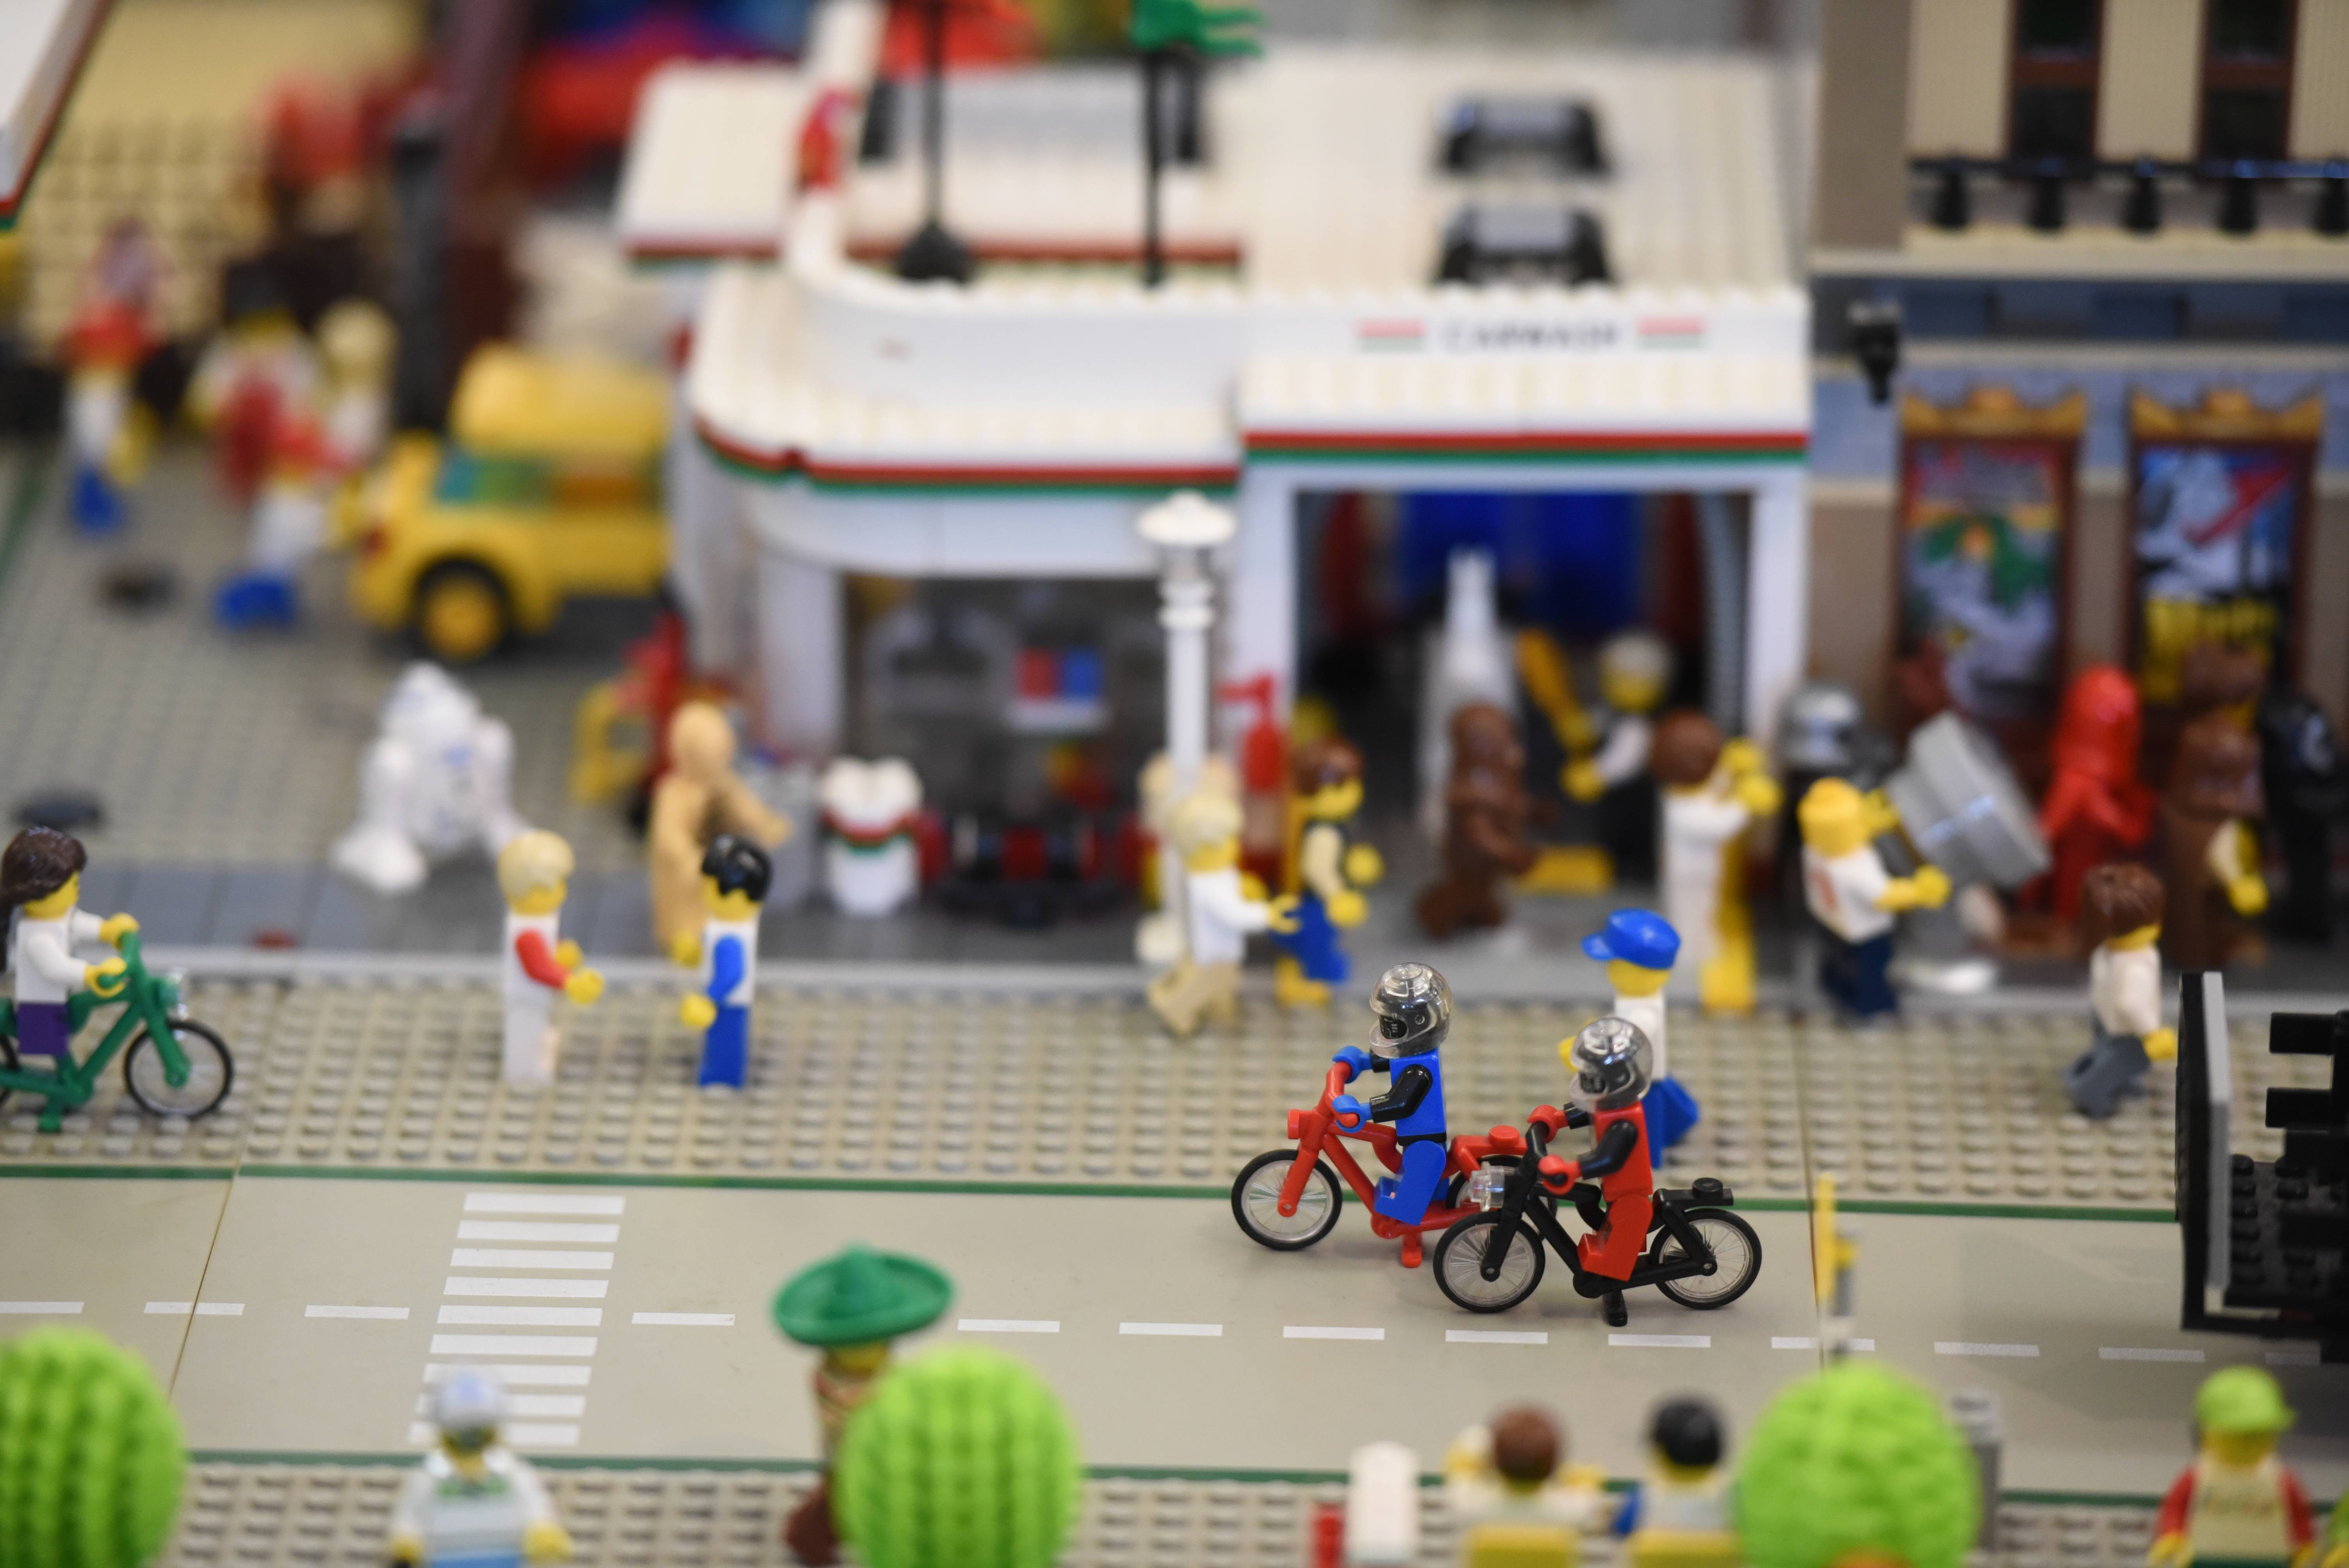 The Northern Illinois Lego Train Club sponsored its 10th annual show Saturday at Cantigny Park. Thousands of people show up every year.